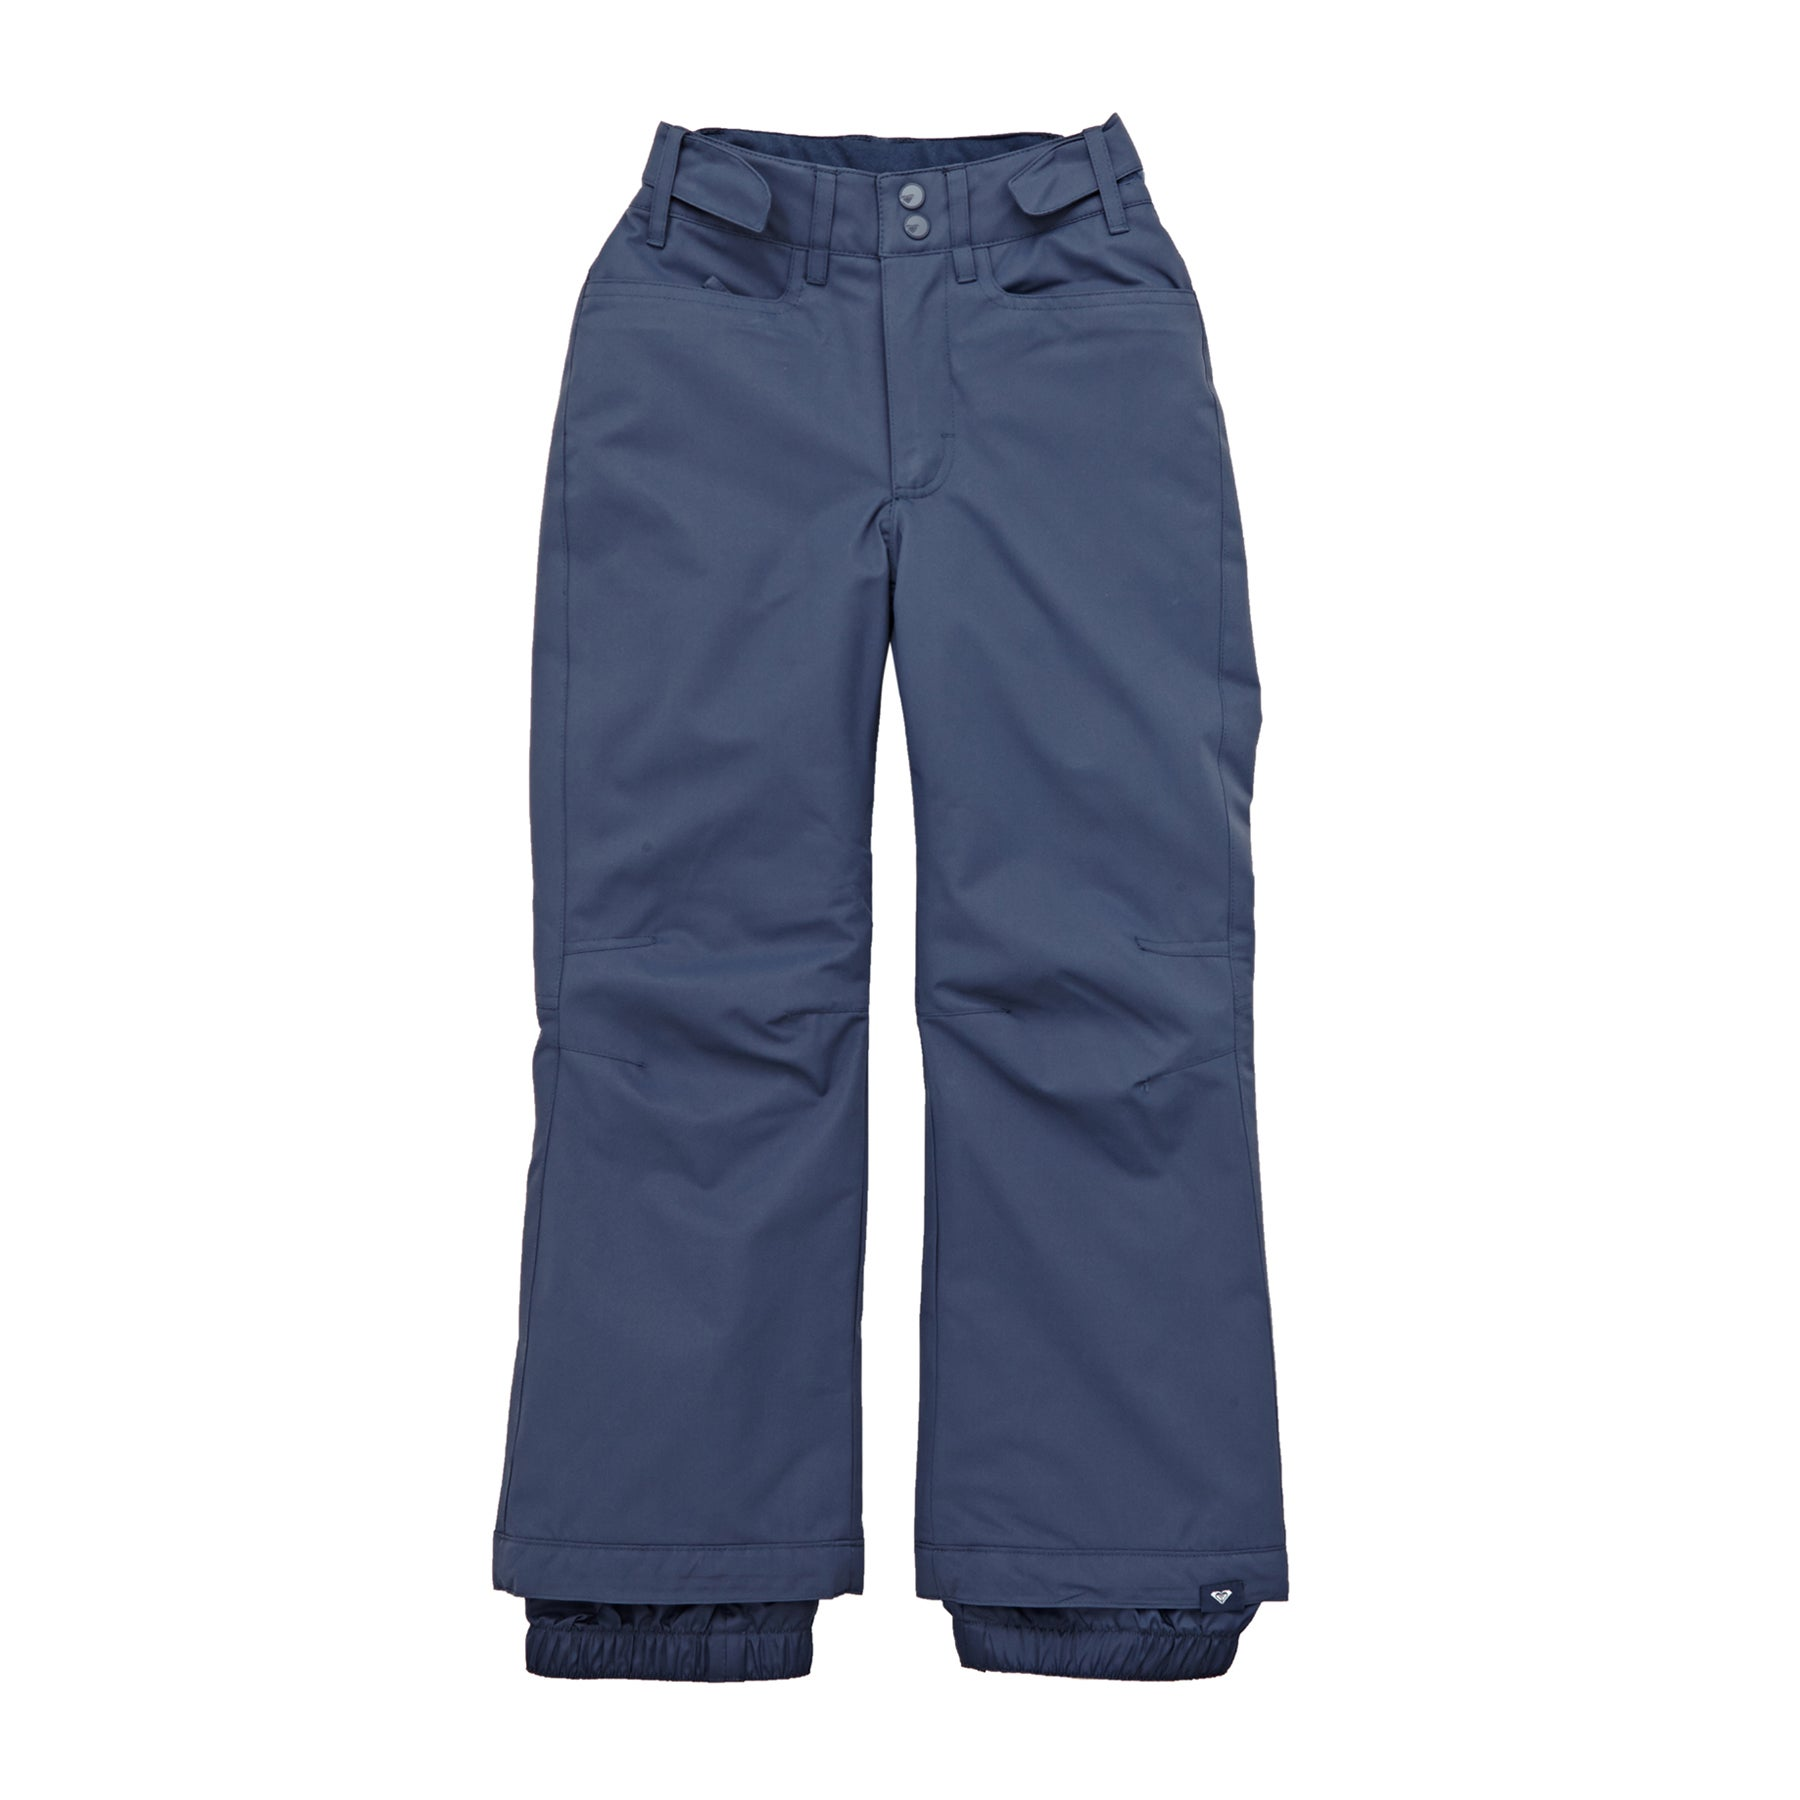 Roxy Backyard Mädchen Snowboard-Hose - Crown Blue